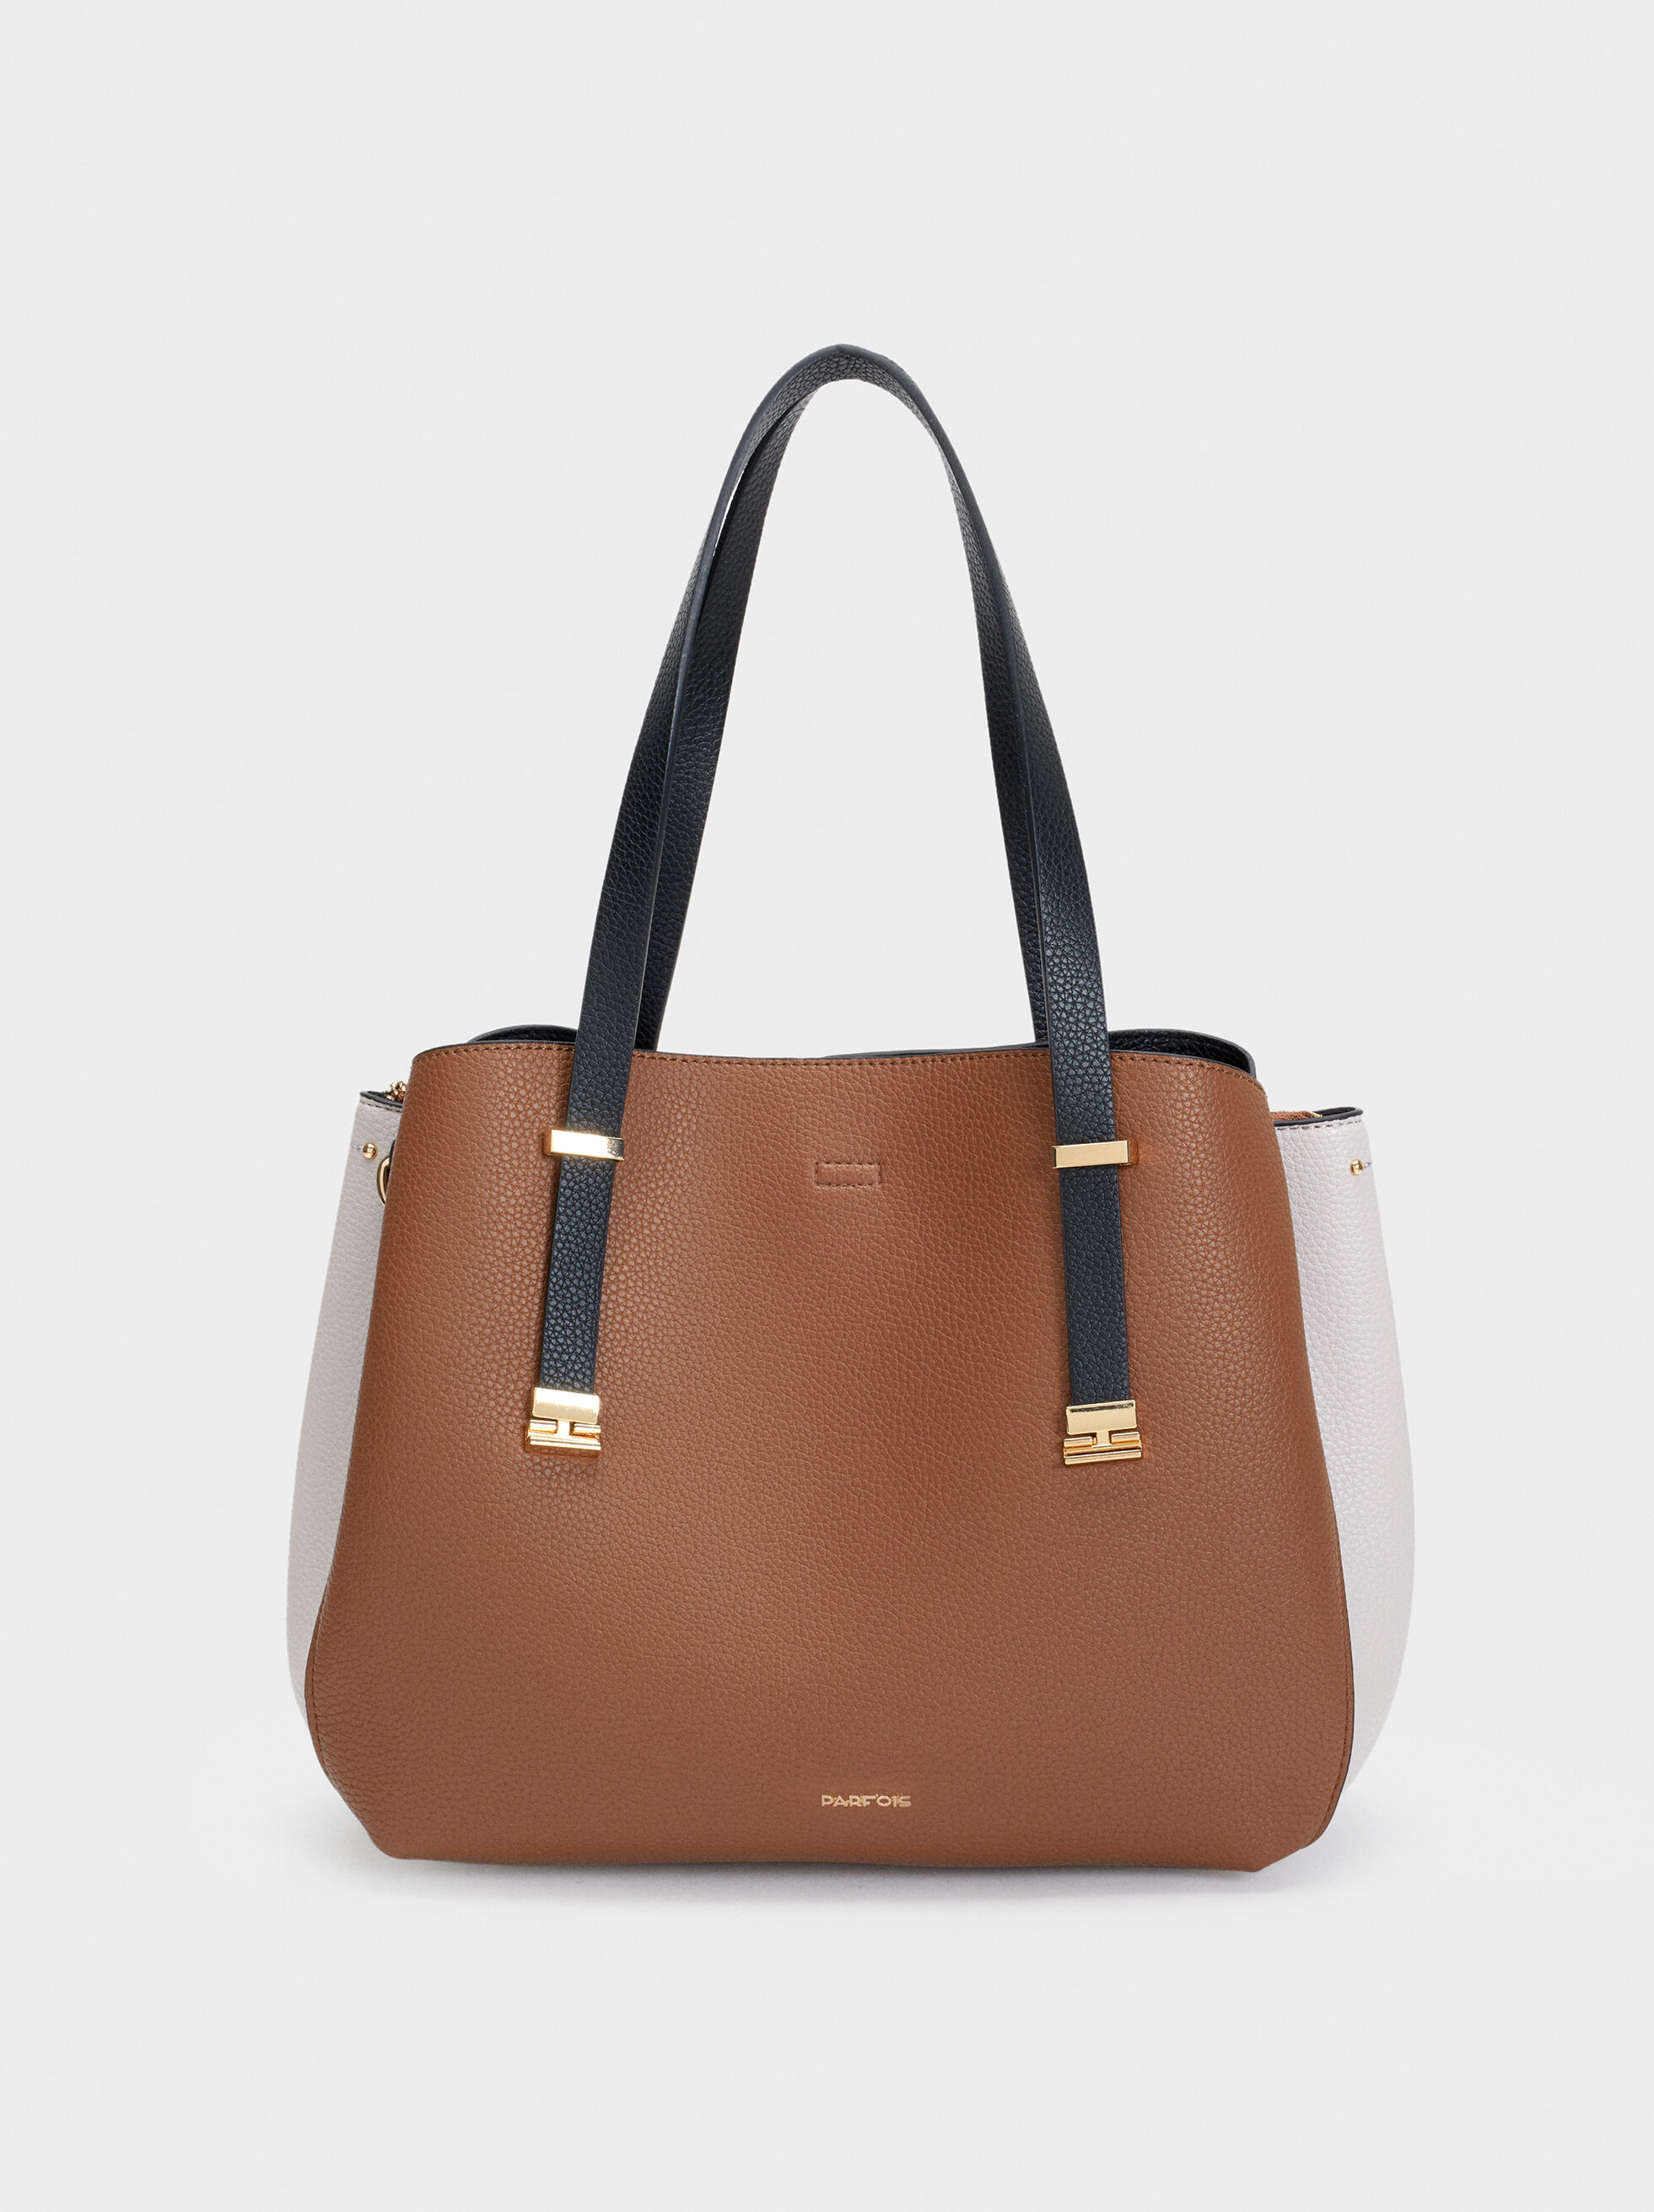 Embossed Tote Bag, Camel, hi-res